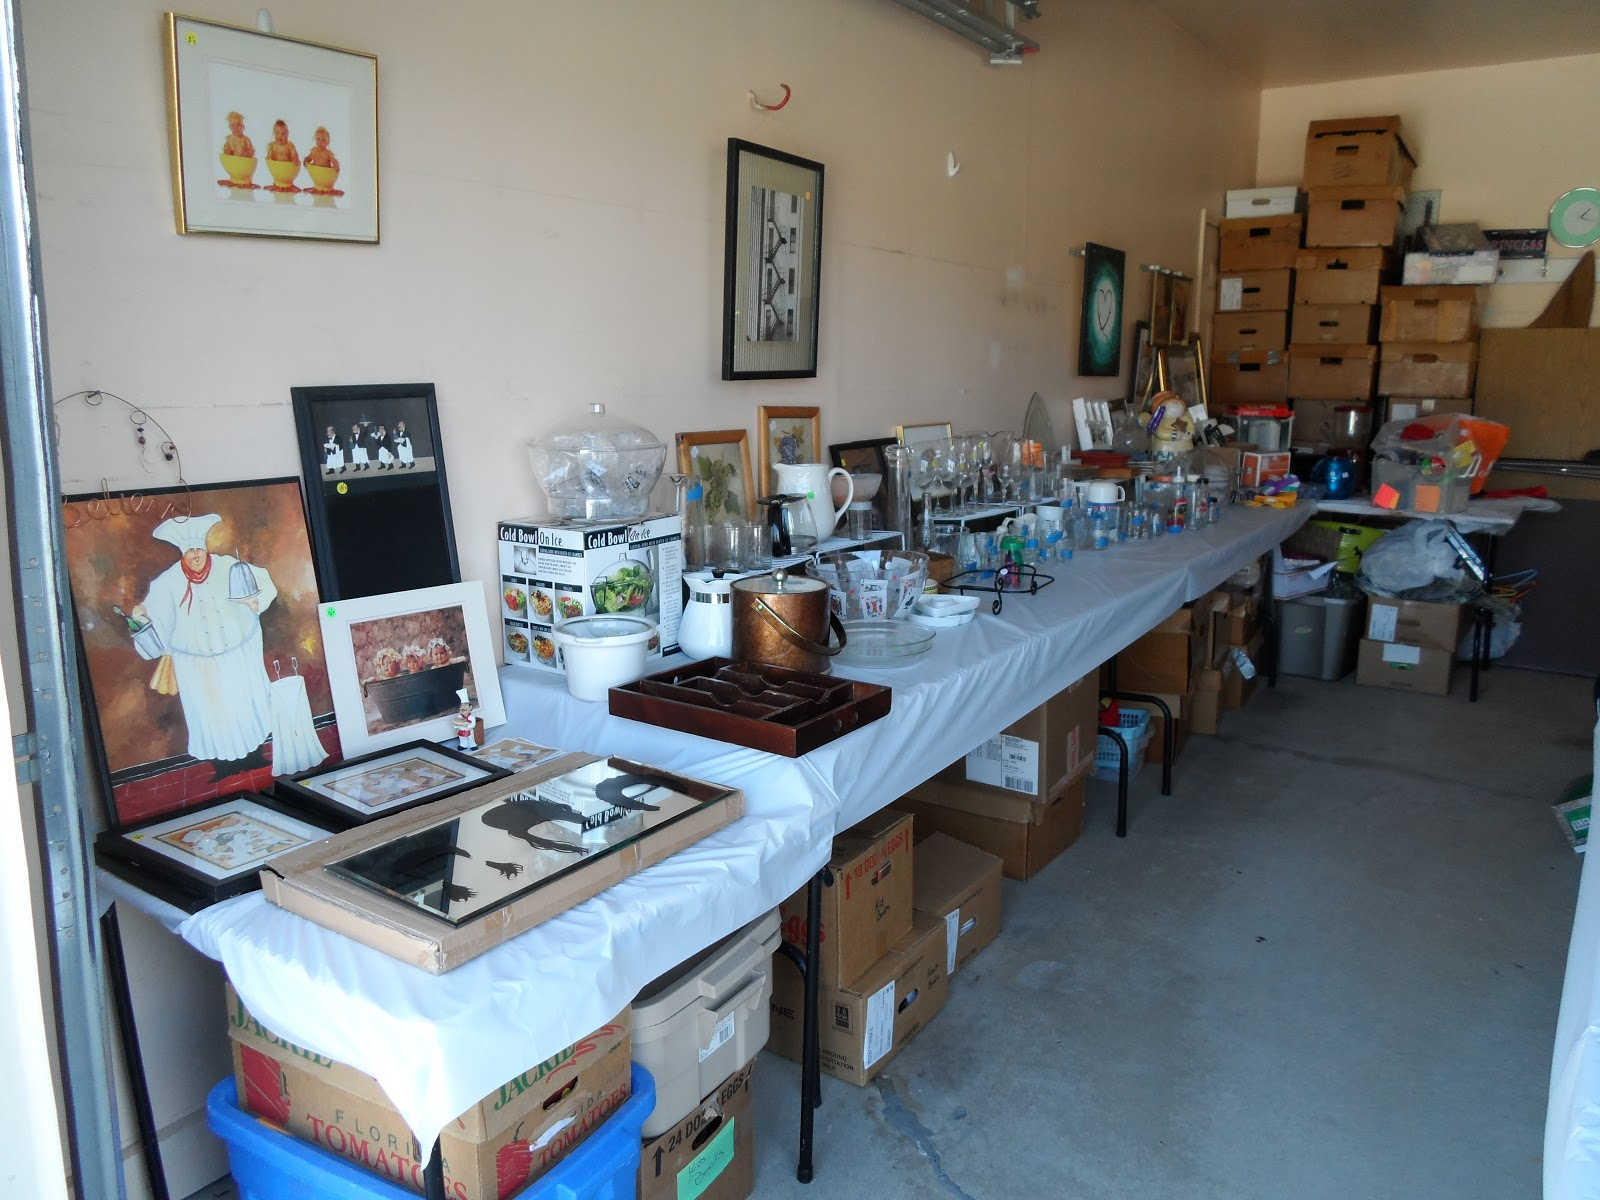 Garage $ale GrOOve: TIPS TO SET UP YOUR GARAGE SALE